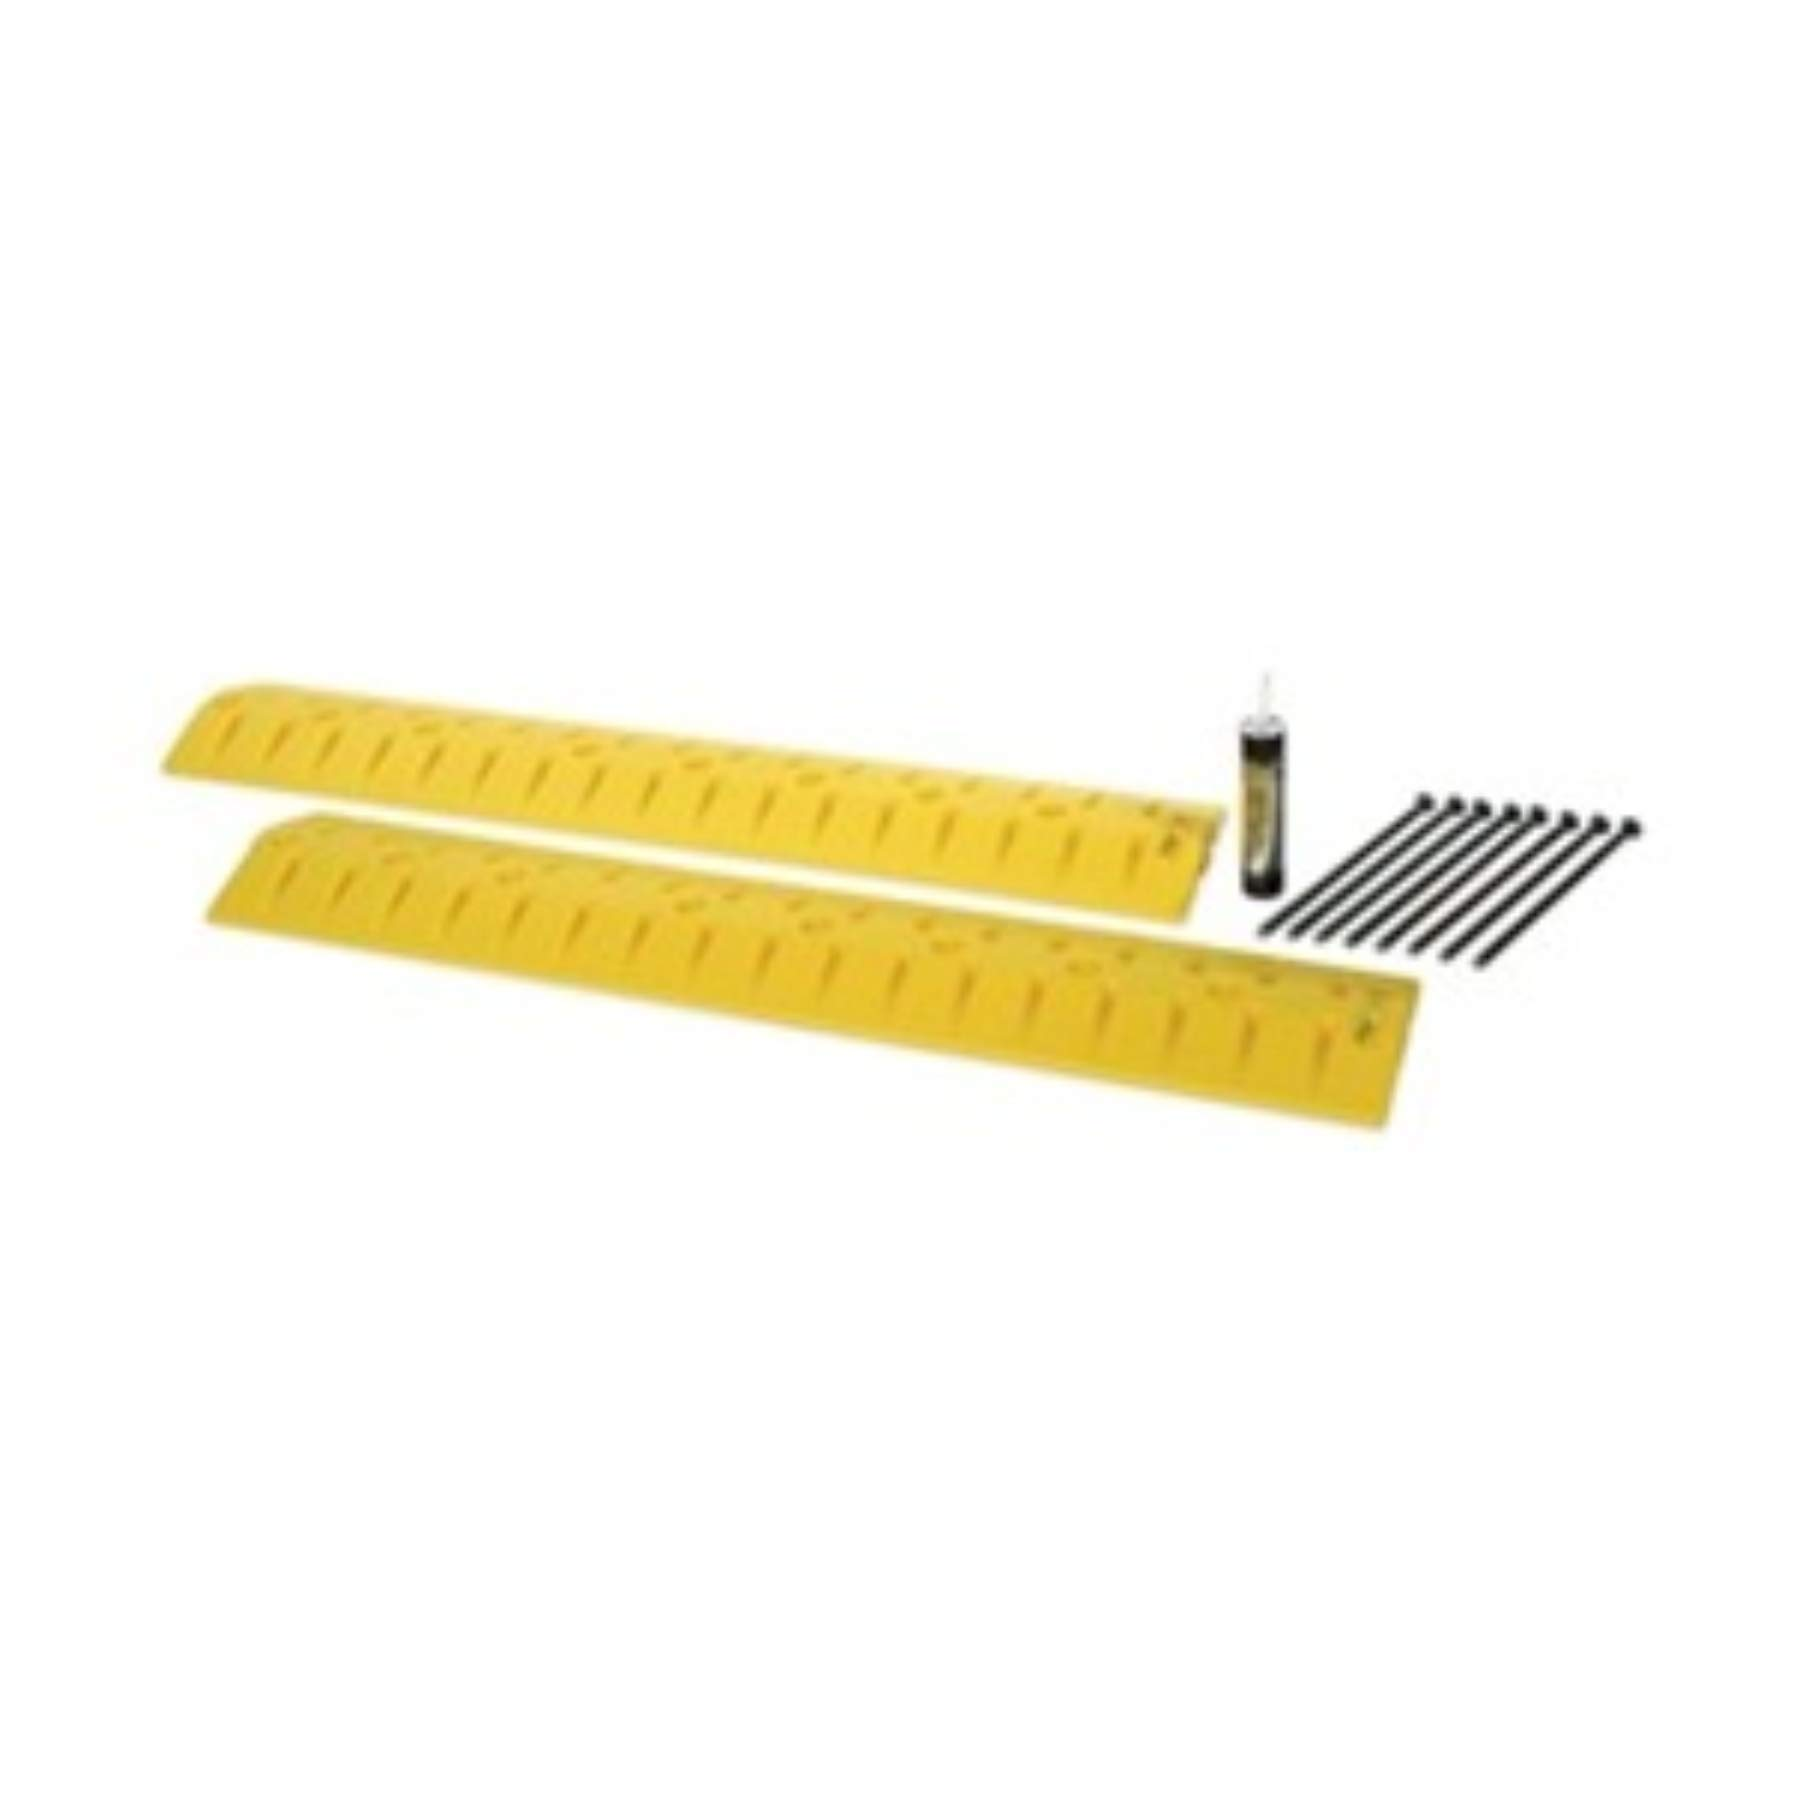 Eagle 1793 Speed Bump Cable Protector, 108'' Length x 10'' Width x 2'' Height, Yellow by Eagle